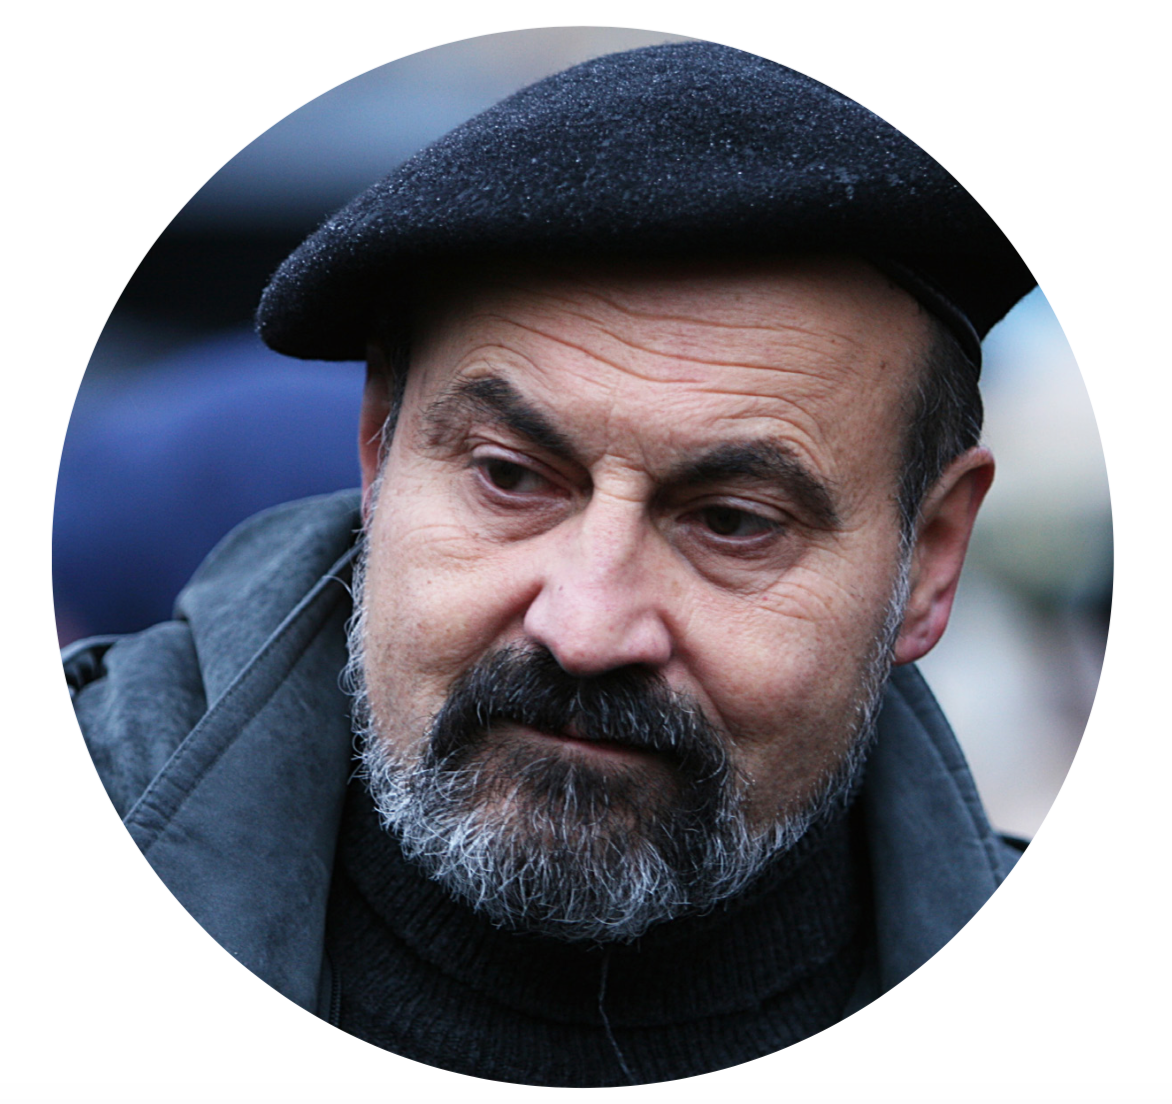 March 28, 2017 – Tomas Halik: MAKING THE WORLD THINK AGAIN REASON, HOPE, AND FAITH IN AN AGE OF POPULISM